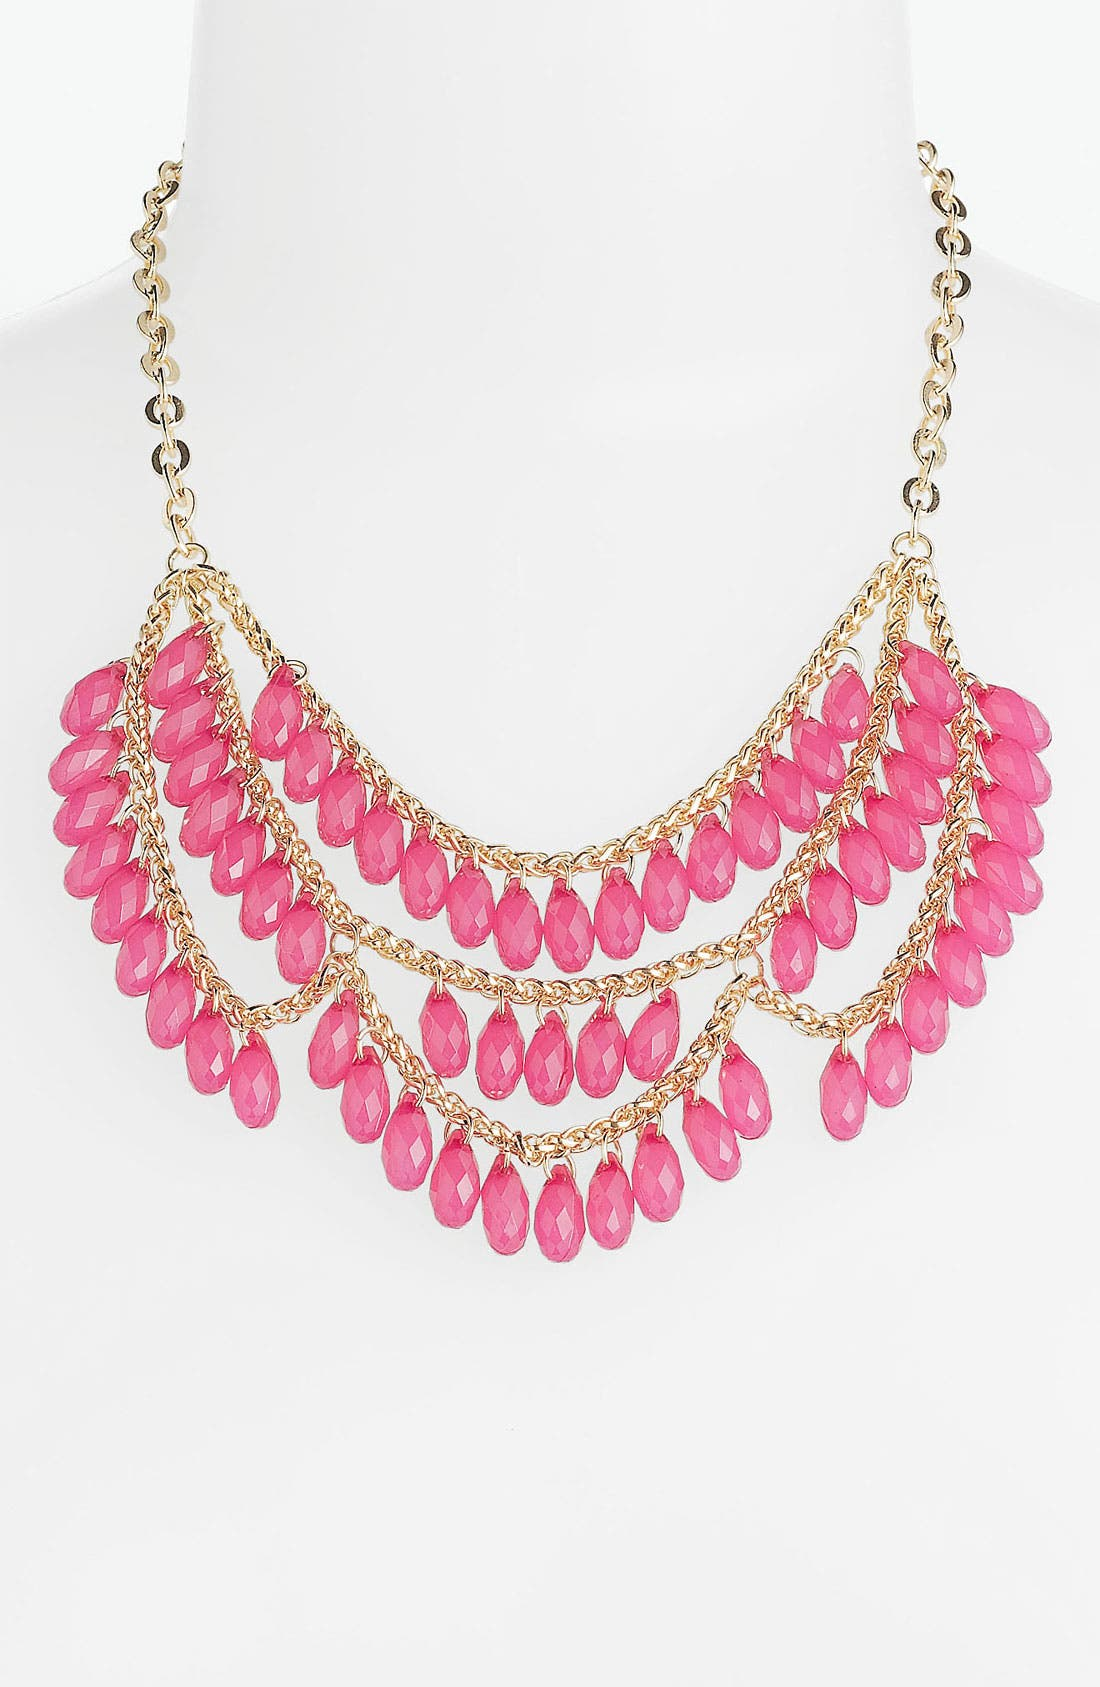 Alternate Image 1 Selected - Stephan & Co. Teardrop Bib Necklace